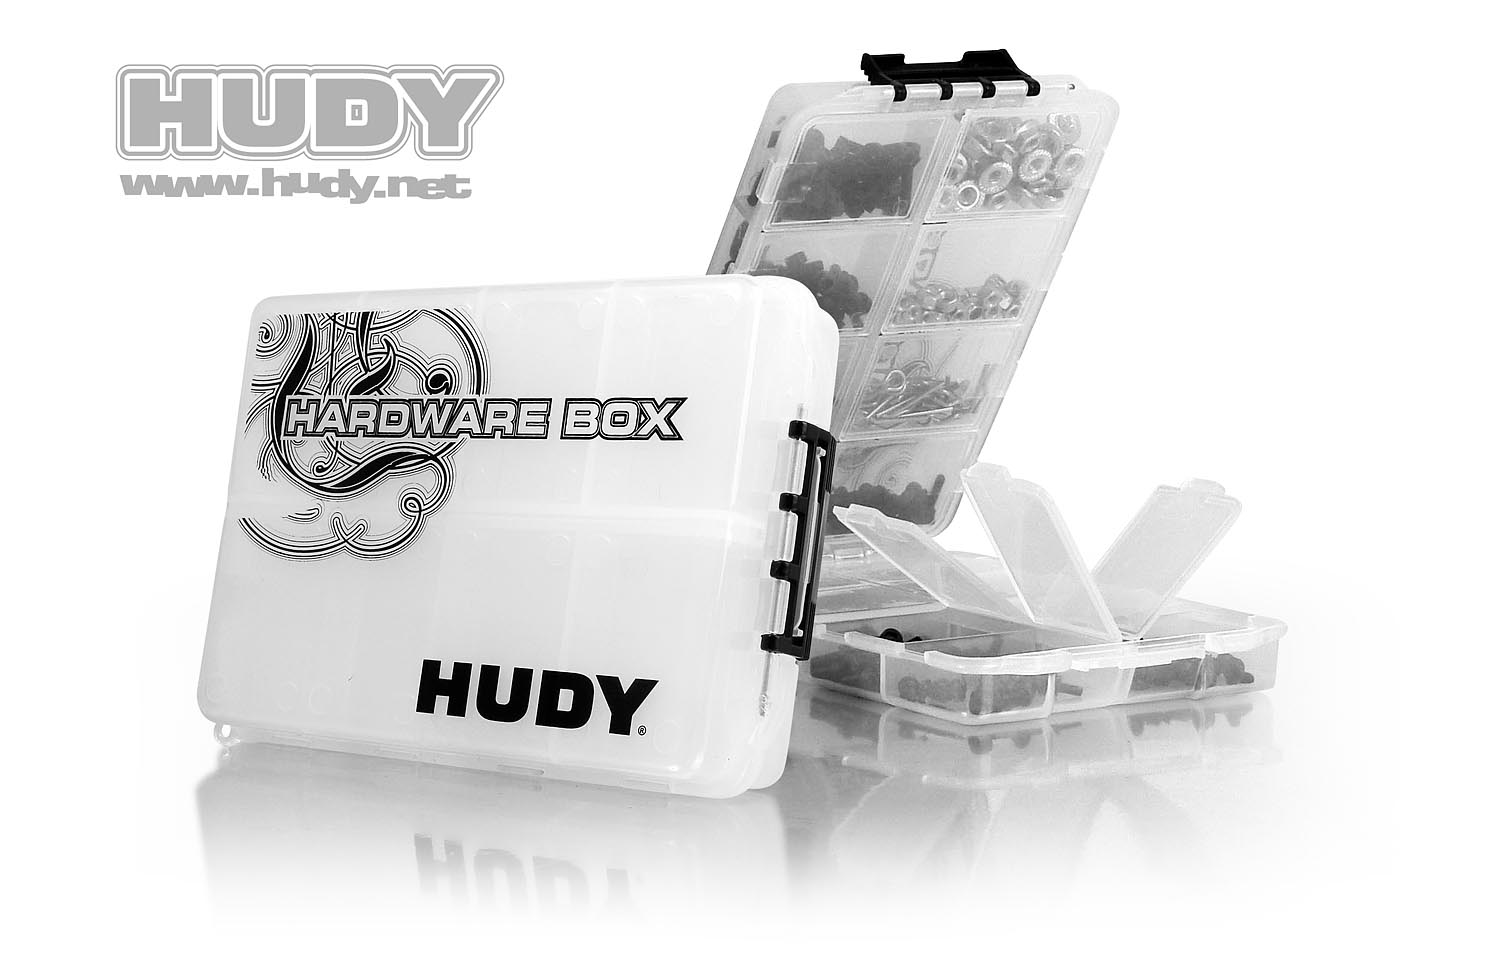 HUDY HARDWARE BOX - DOUBLE-SIDED